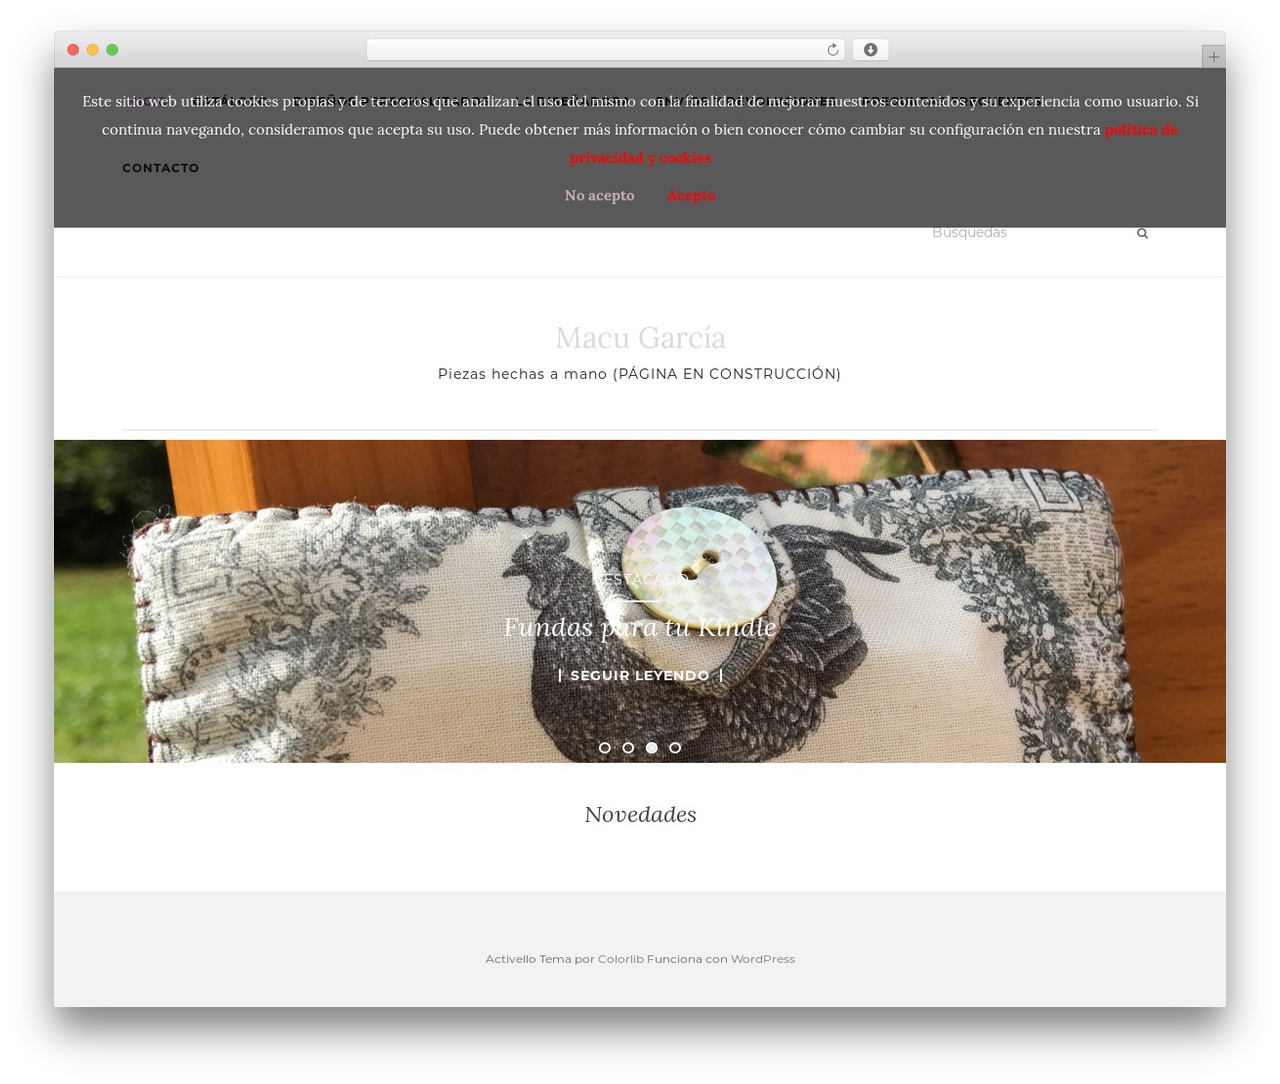 Activello theme WordPress free - macugarcia.com